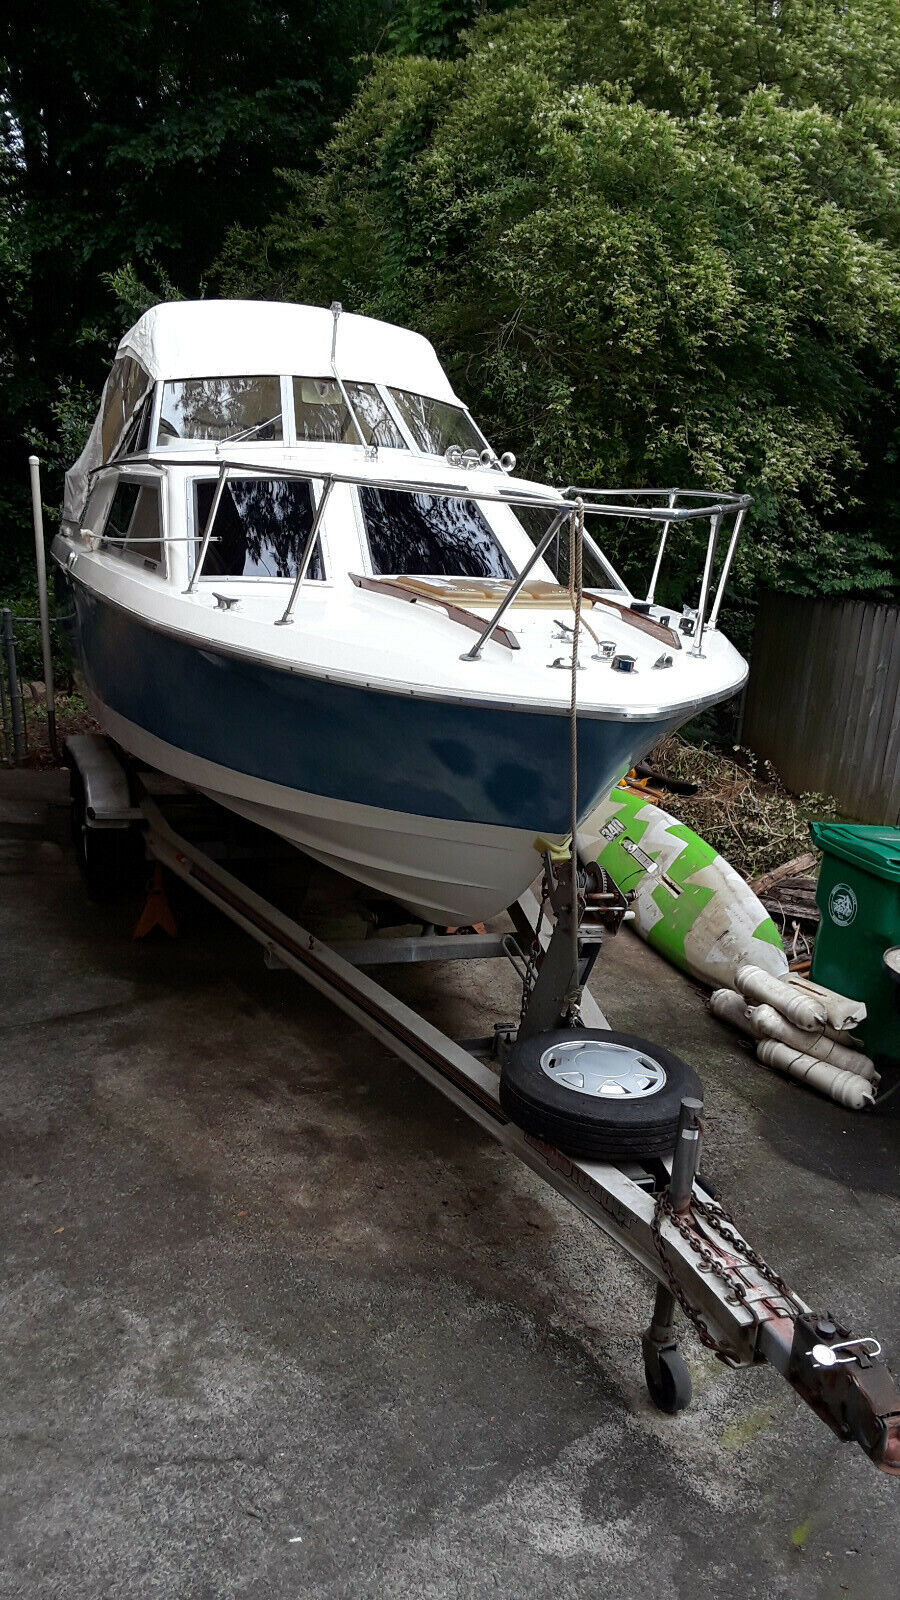 PROJECT - 1979 Crestliner 21-1/2 Foot Cabin Cruiser With Trailer